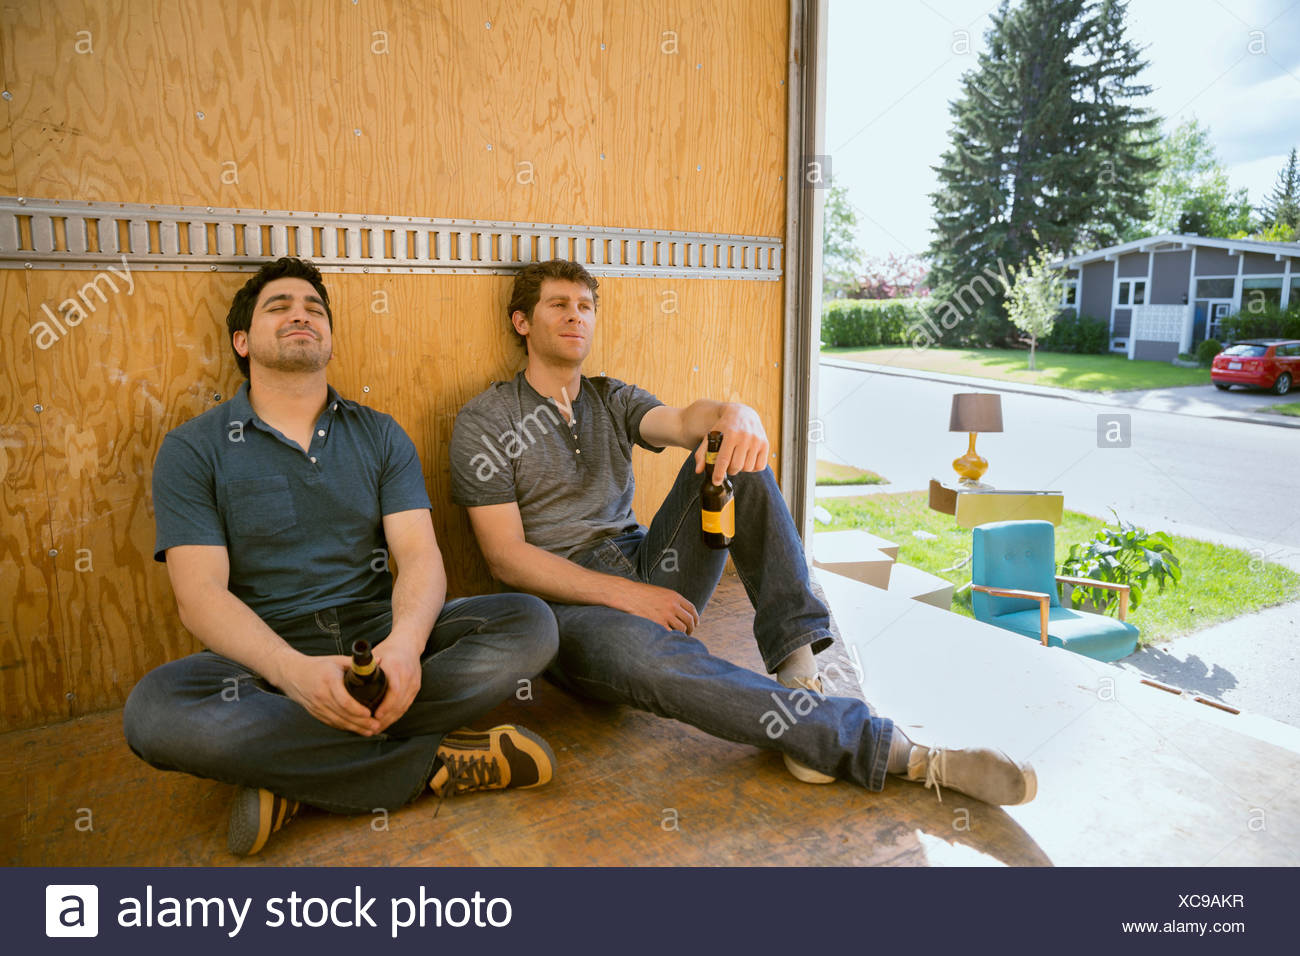 Men drinking beer and resting inside moving van - Stock Image